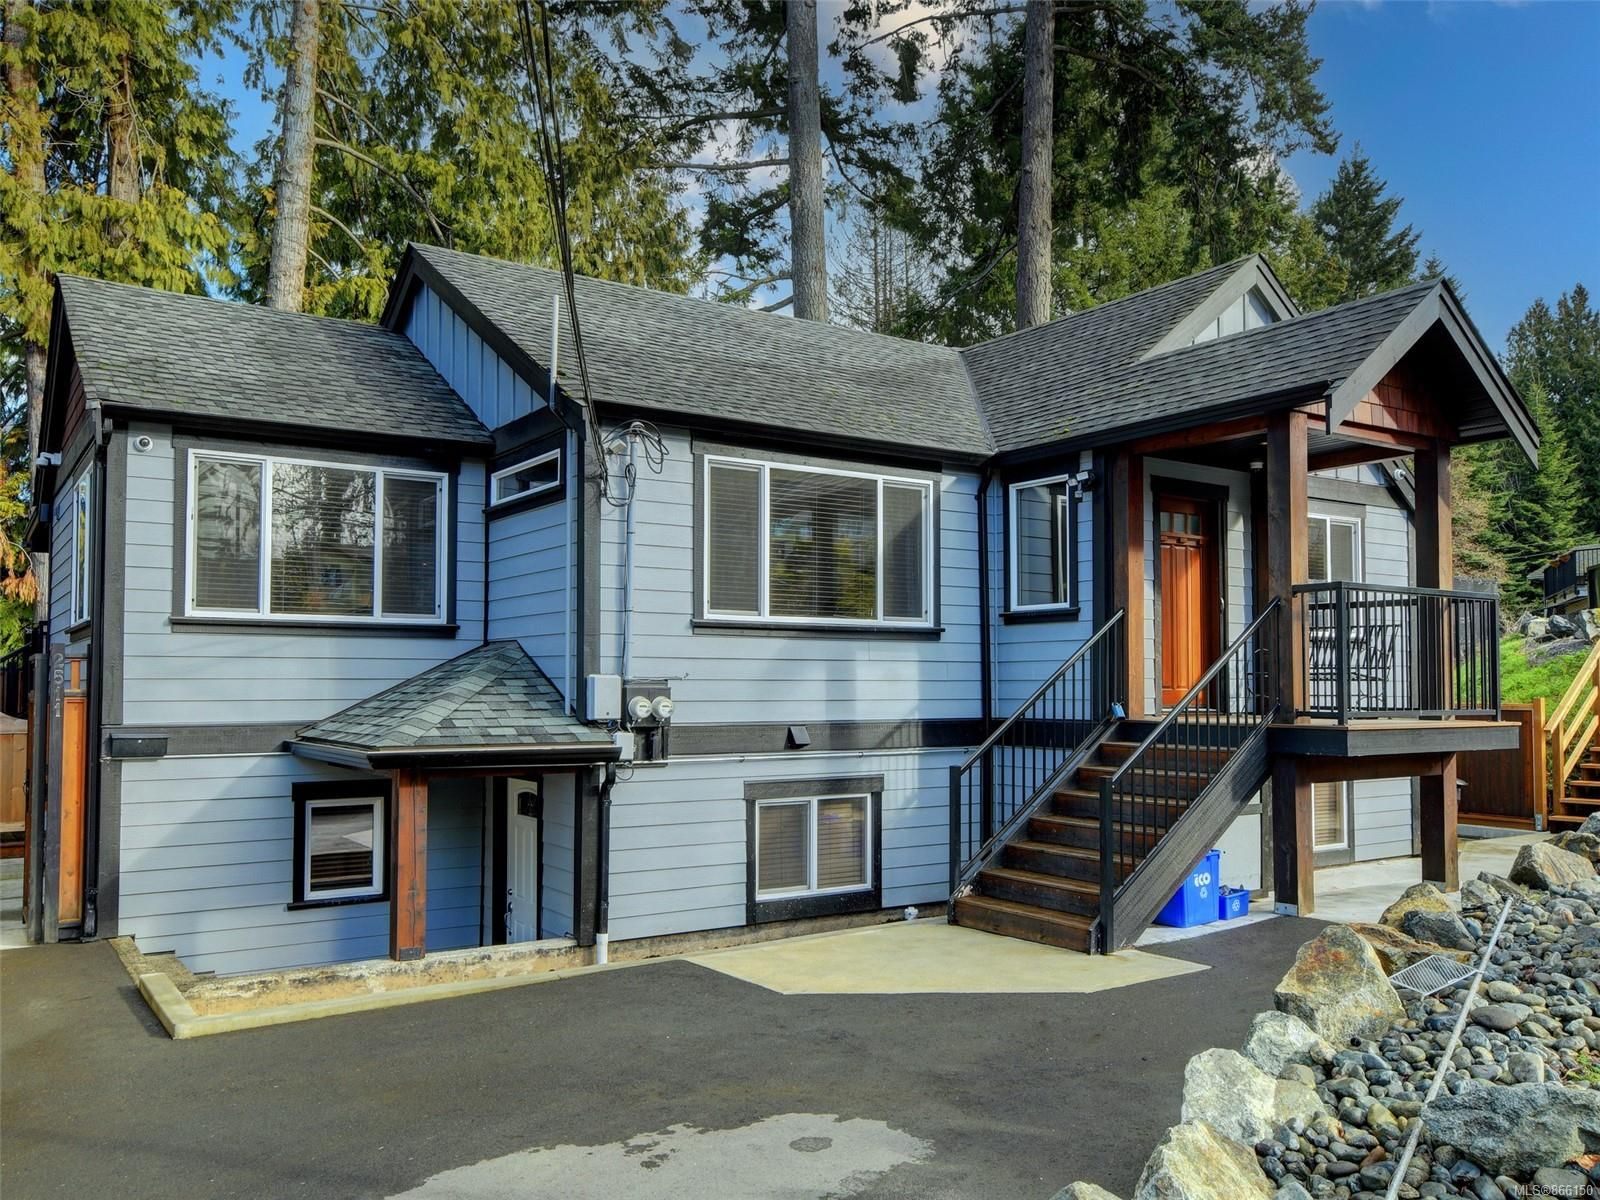 Main Photo: 2511 Duncan Pl in : La Mill Hill House for sale (Langford)  : MLS®# 866150